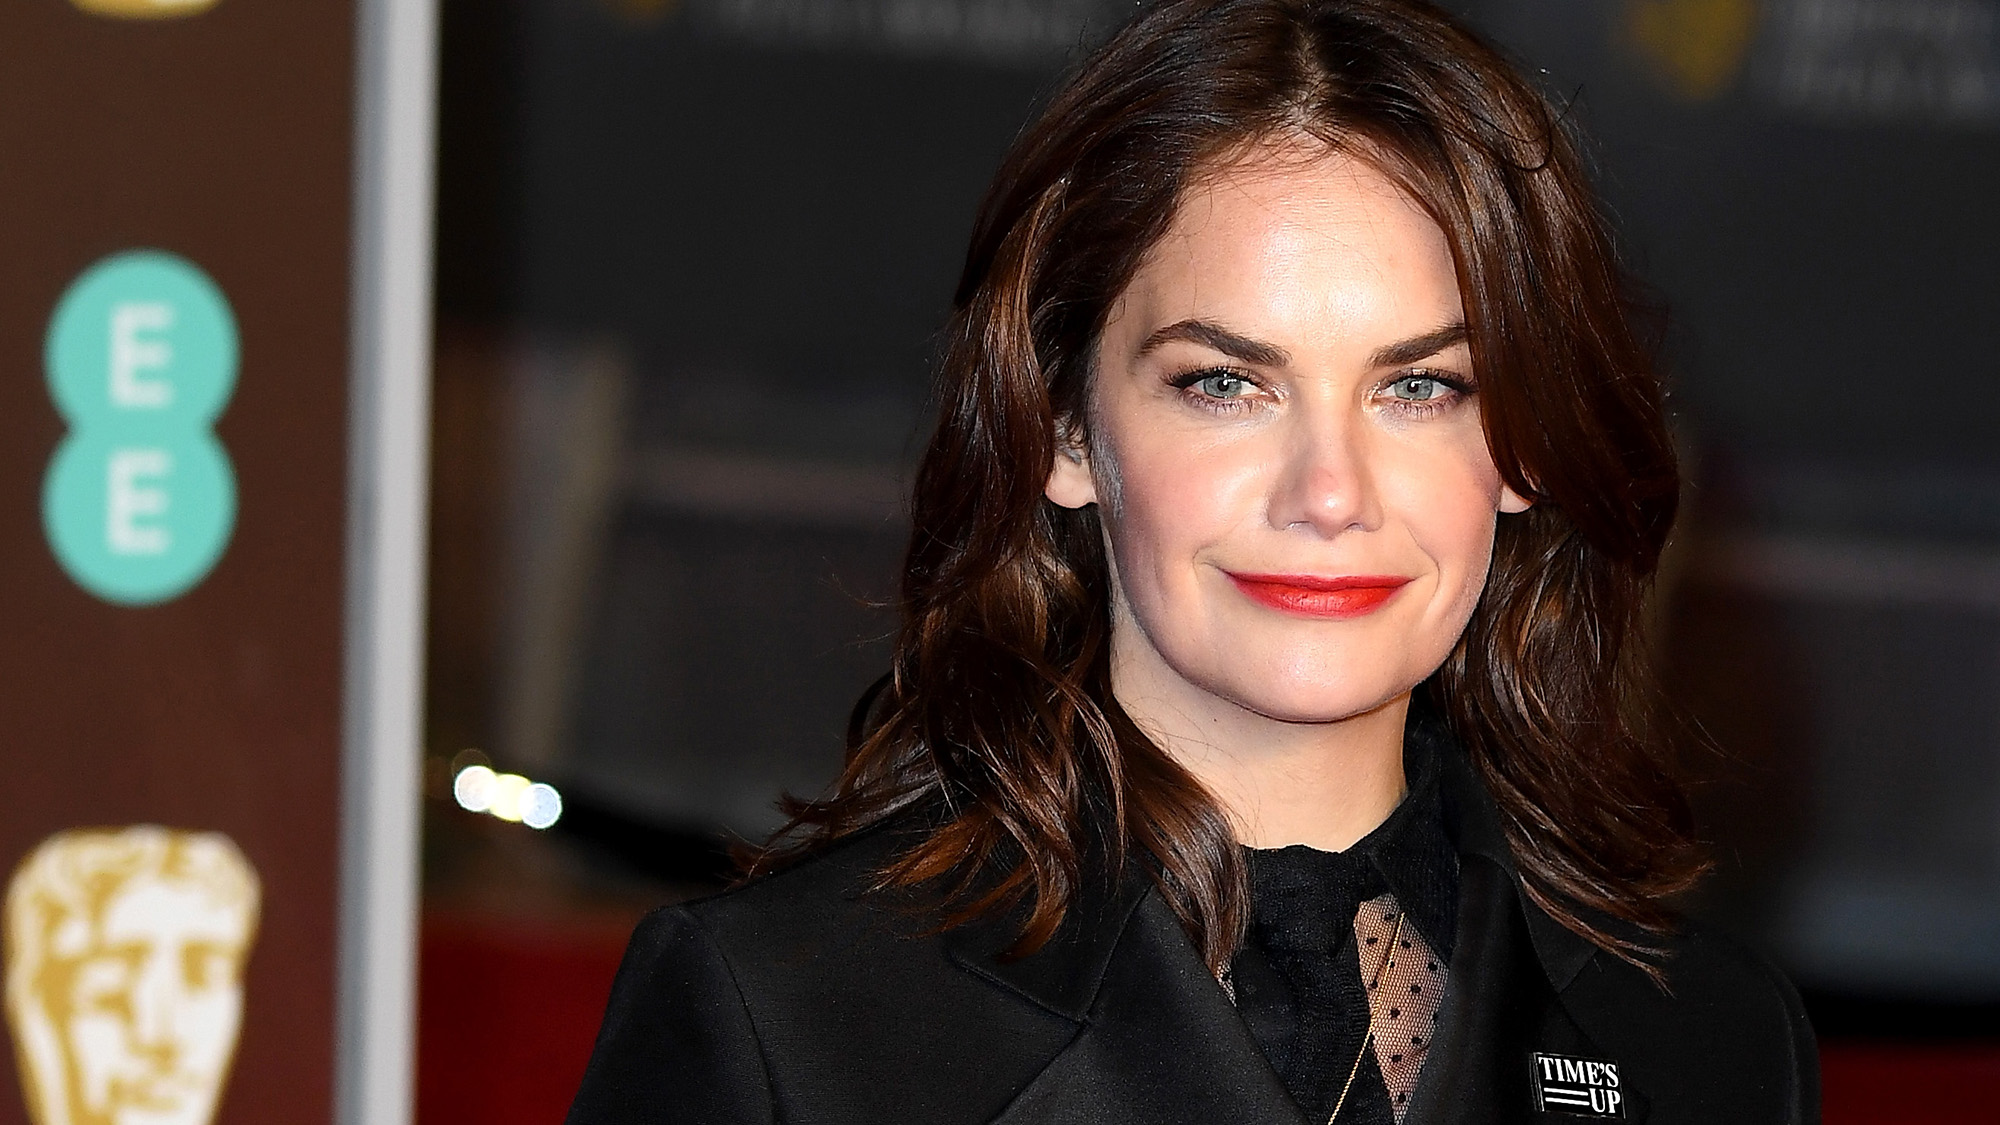 Ruth Wilson, Cush Jumbo, And Rosamund Pike Are In Talks To Star In Movie 'Greatest Days'